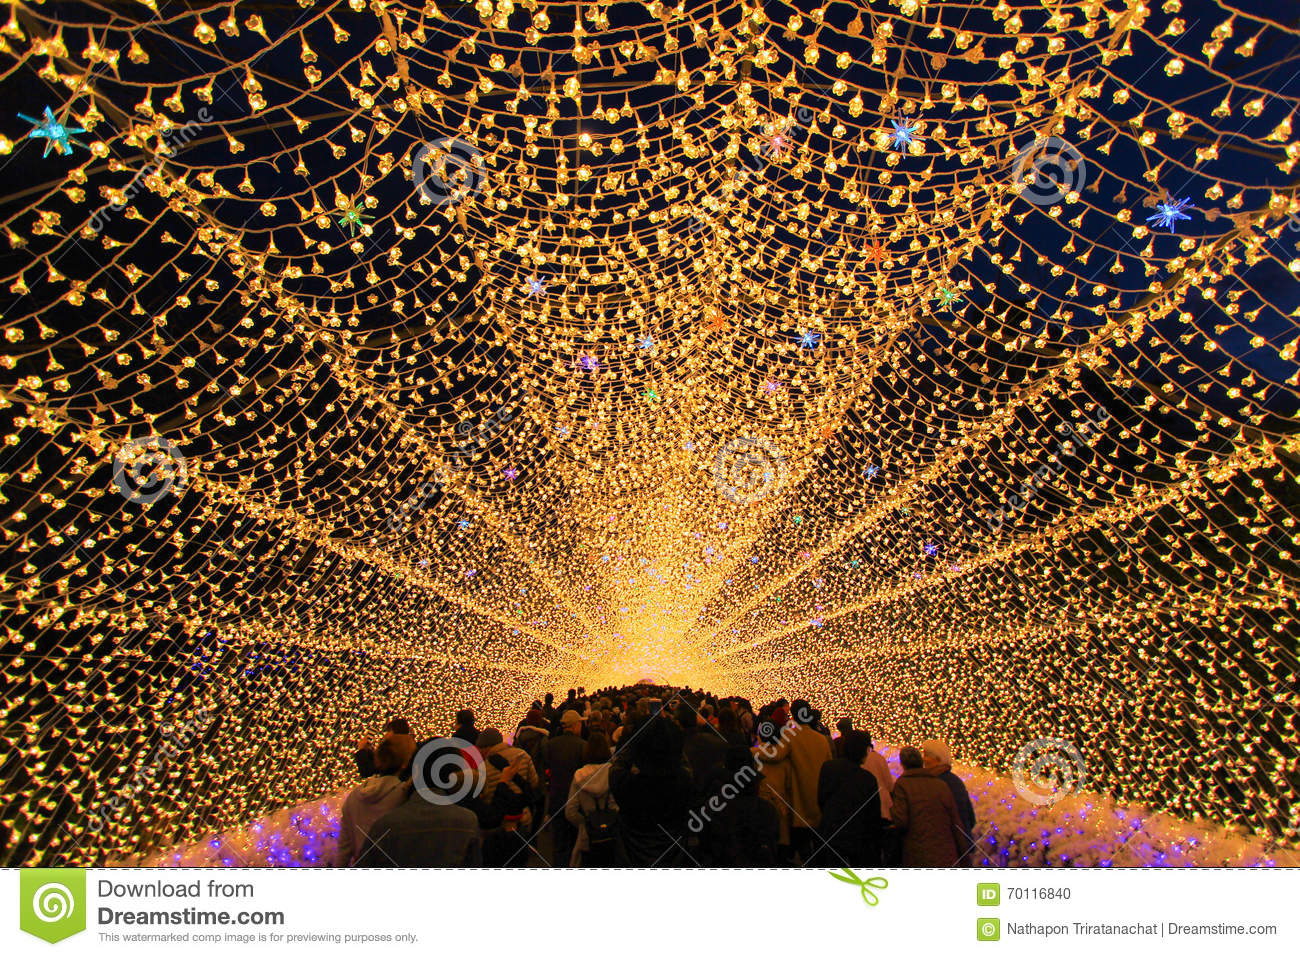 Nabana No Sato: Inside Japans Most Mind-Blowing Light Show Nabana No Sato: Inside Japans Most Mind-Blowing Light Show new pics